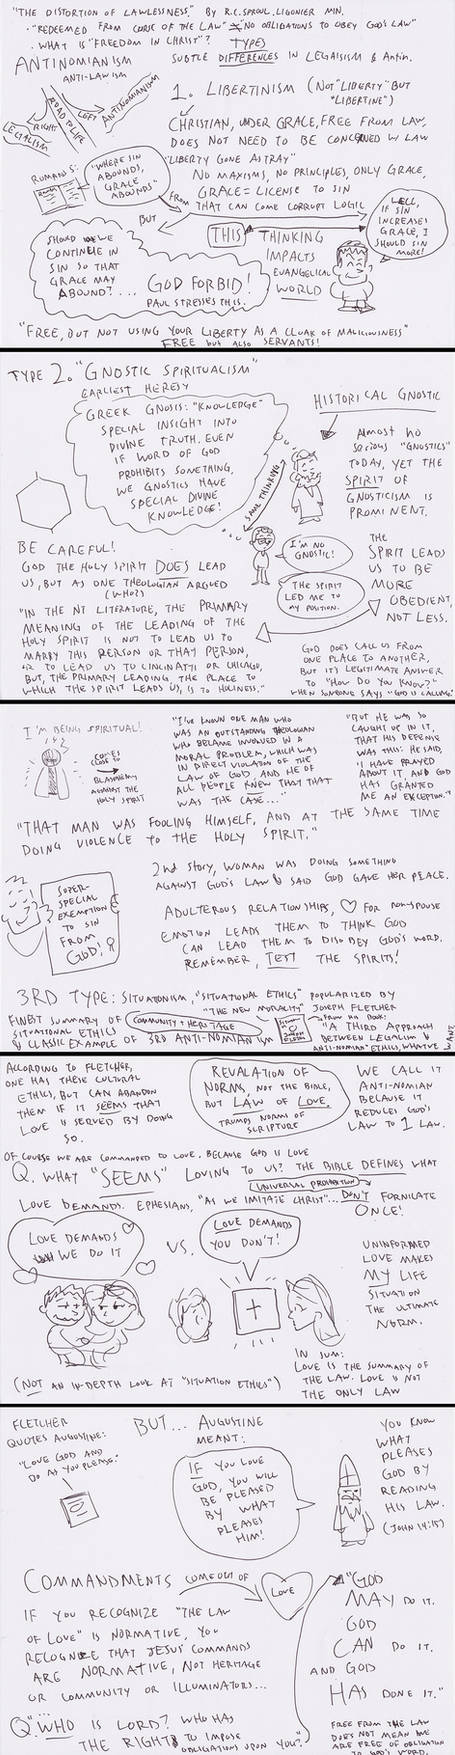 Notes and Doodles on The Distortion of Lawlessnes by